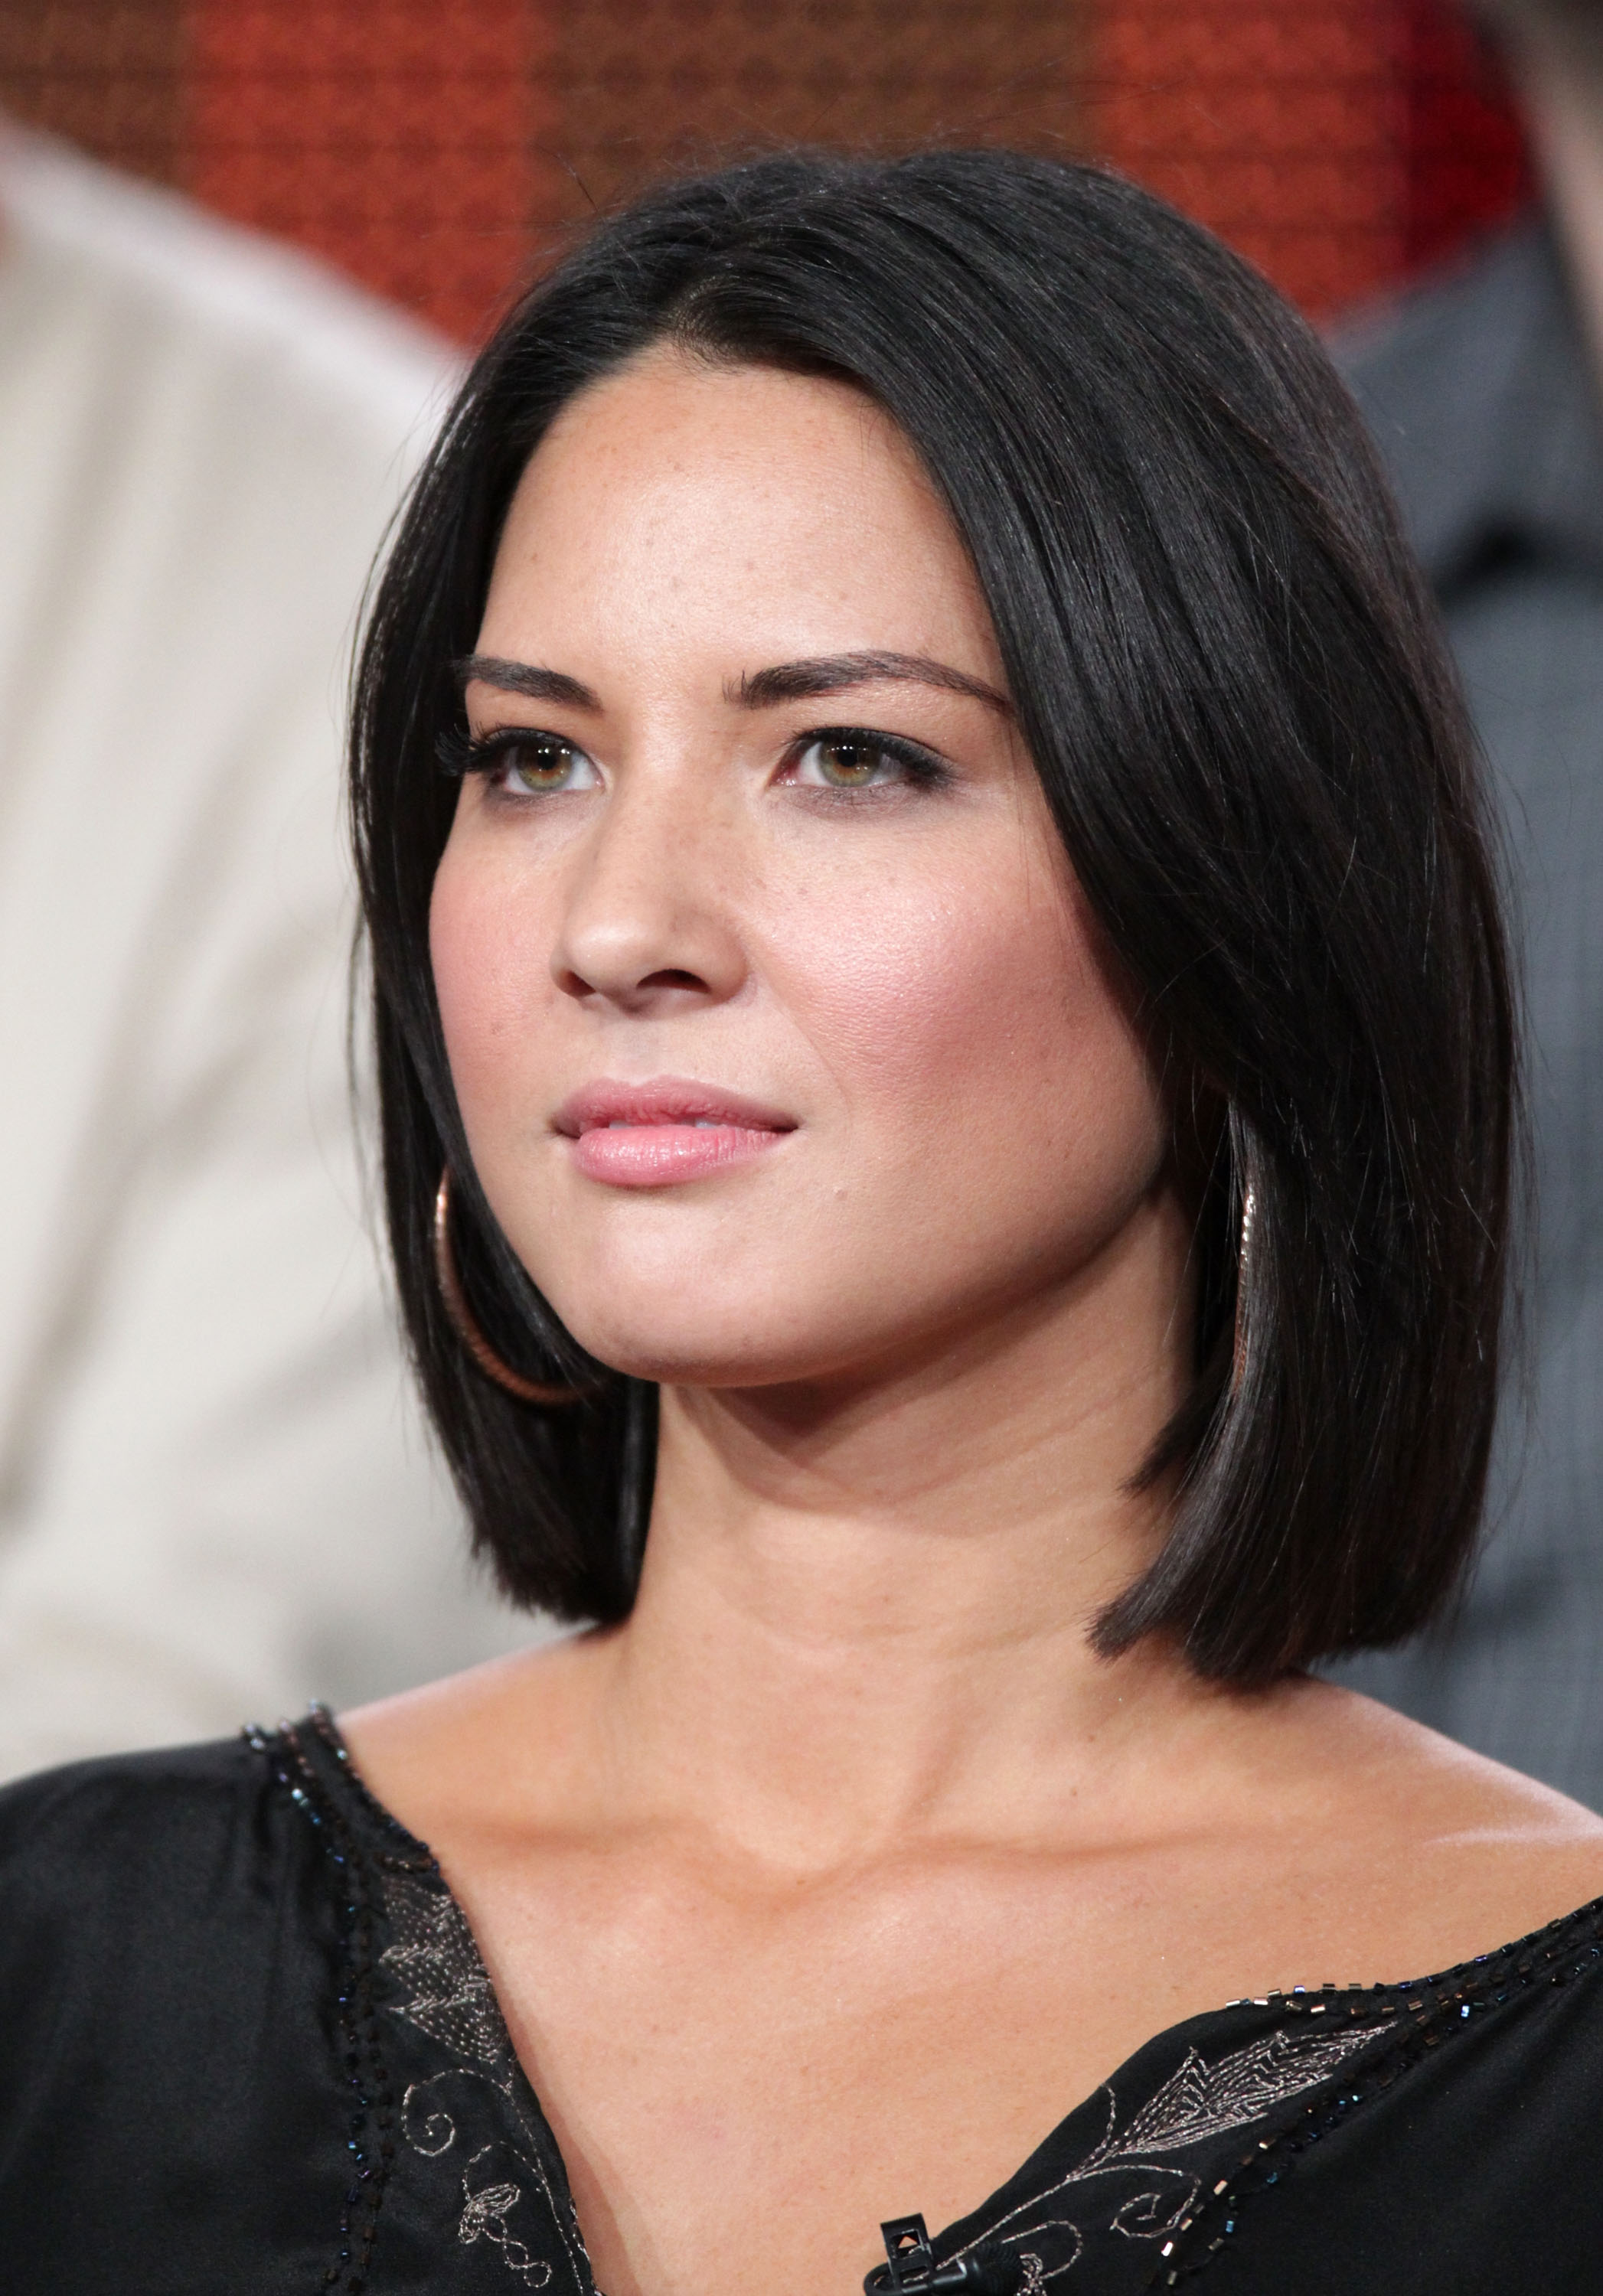 Olivia Munn Net Worth, Age, Height, Husband, Profile, Movies